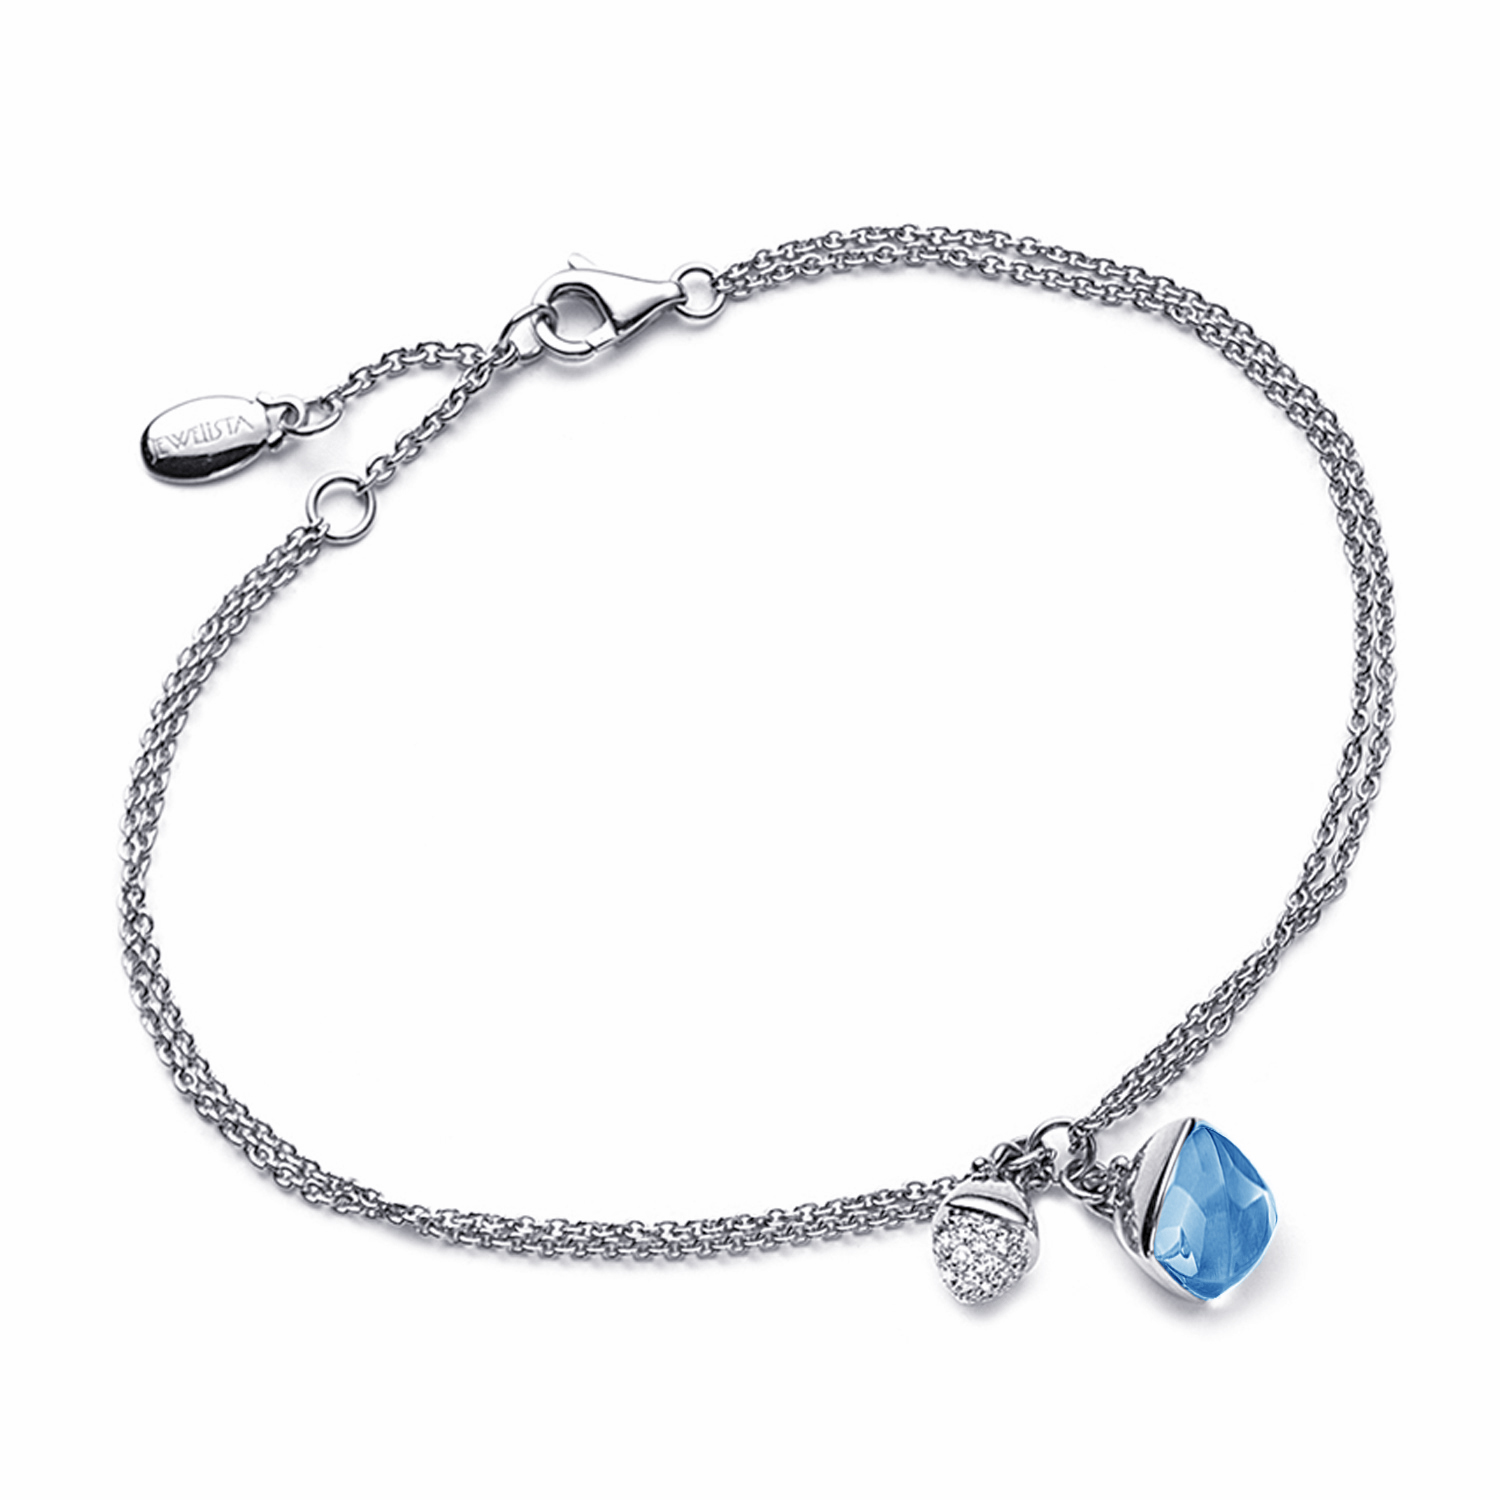 Diamond and Blue Topaz Charm Bracelet in 14k White Gold by Ax Jewelry